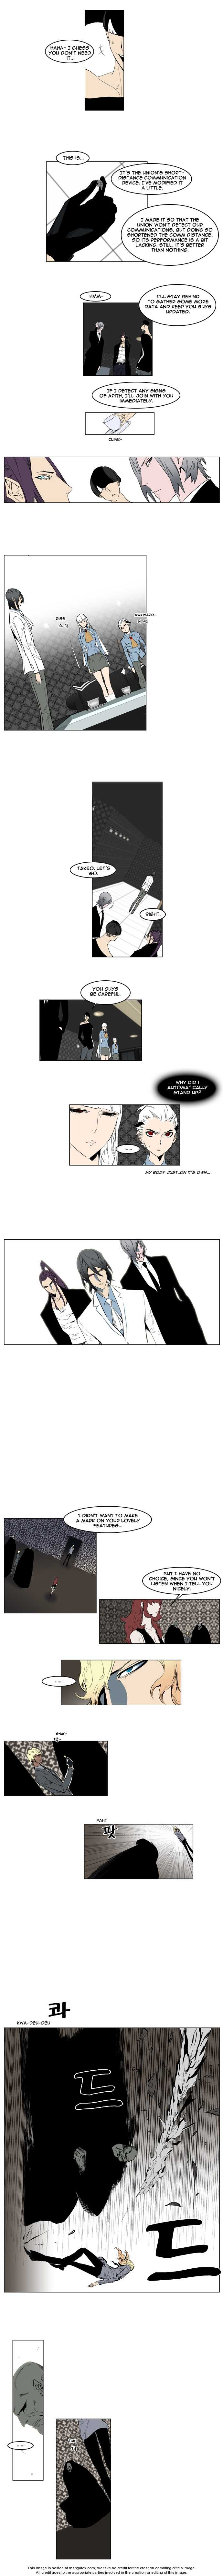 Noblesse 146 Page 2